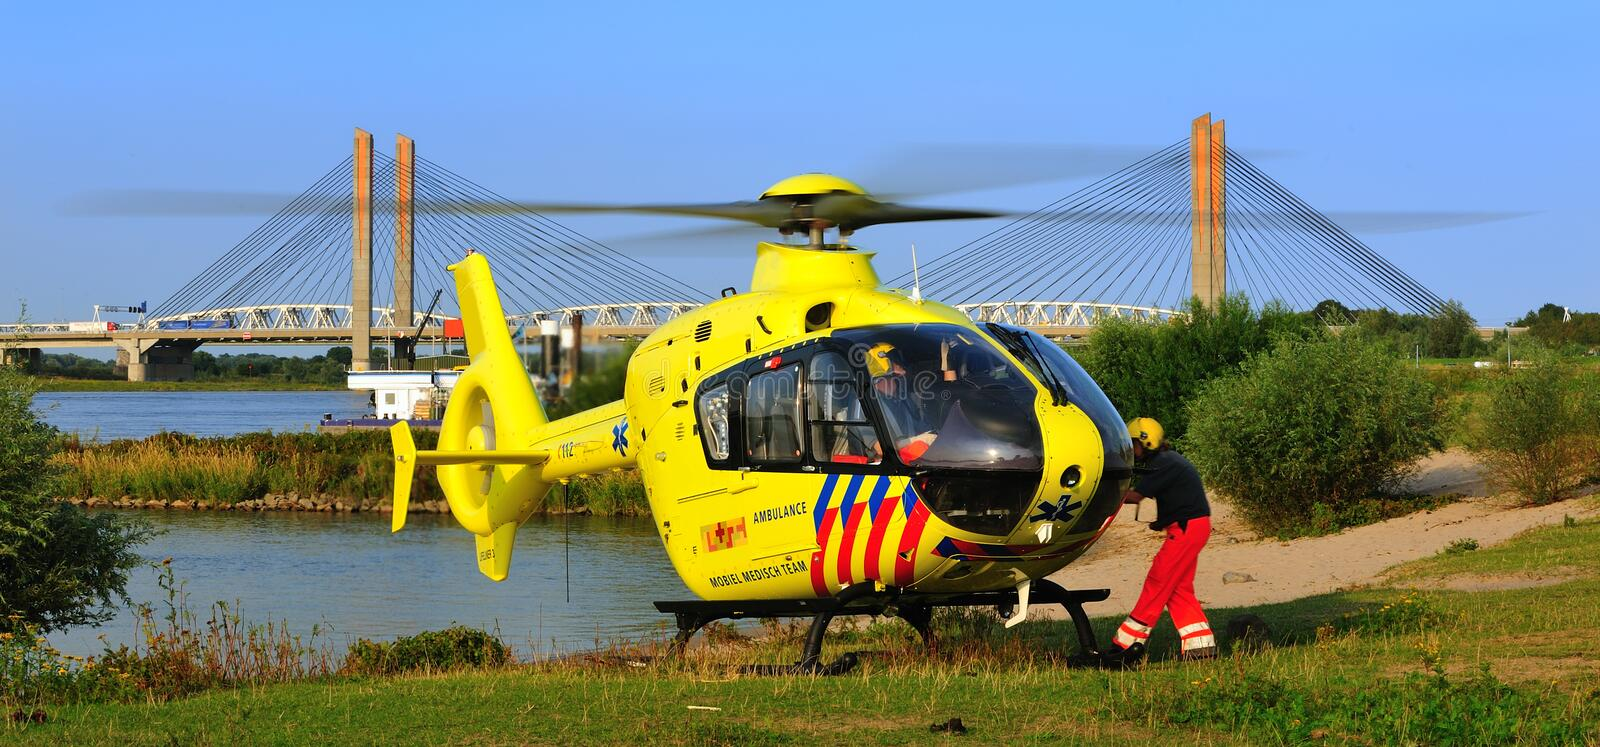 Durtch trauma helicopter. Helicopter the Lifeliner 3 in Holland royalty free stock photography